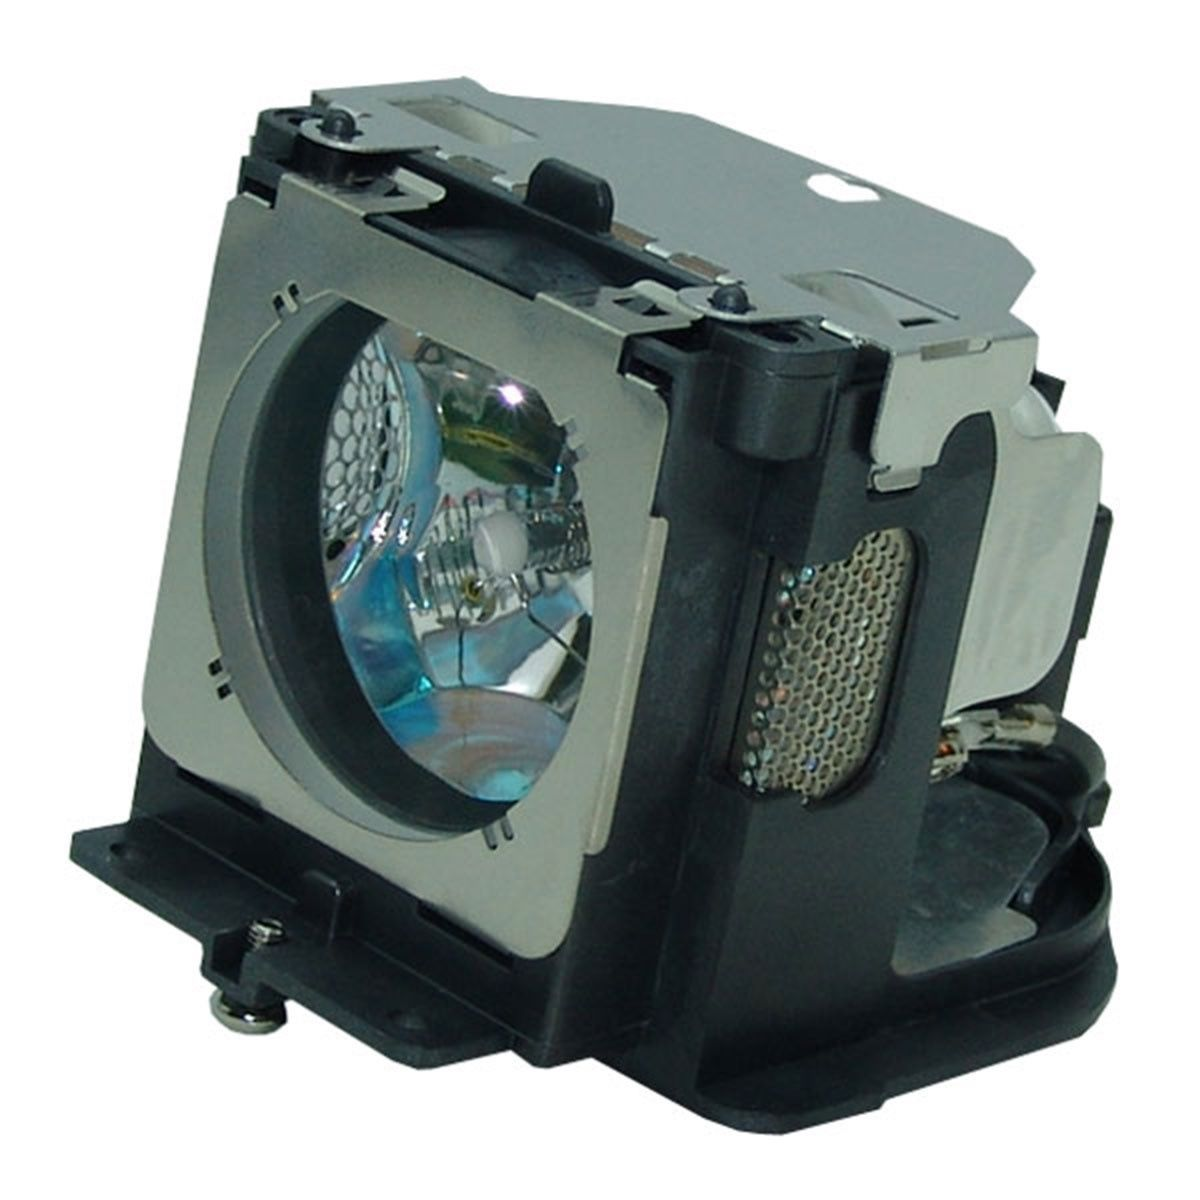 Projector Lamp Bulb POA-LMP103 POALMP103 LMP103 610-331-6345 for SANYO PLC-XU100 PLC-XU110 with housing replacement projector bulb with housing poa lmp103 610 331 6345 for sanyo plc xu100 plc xu110